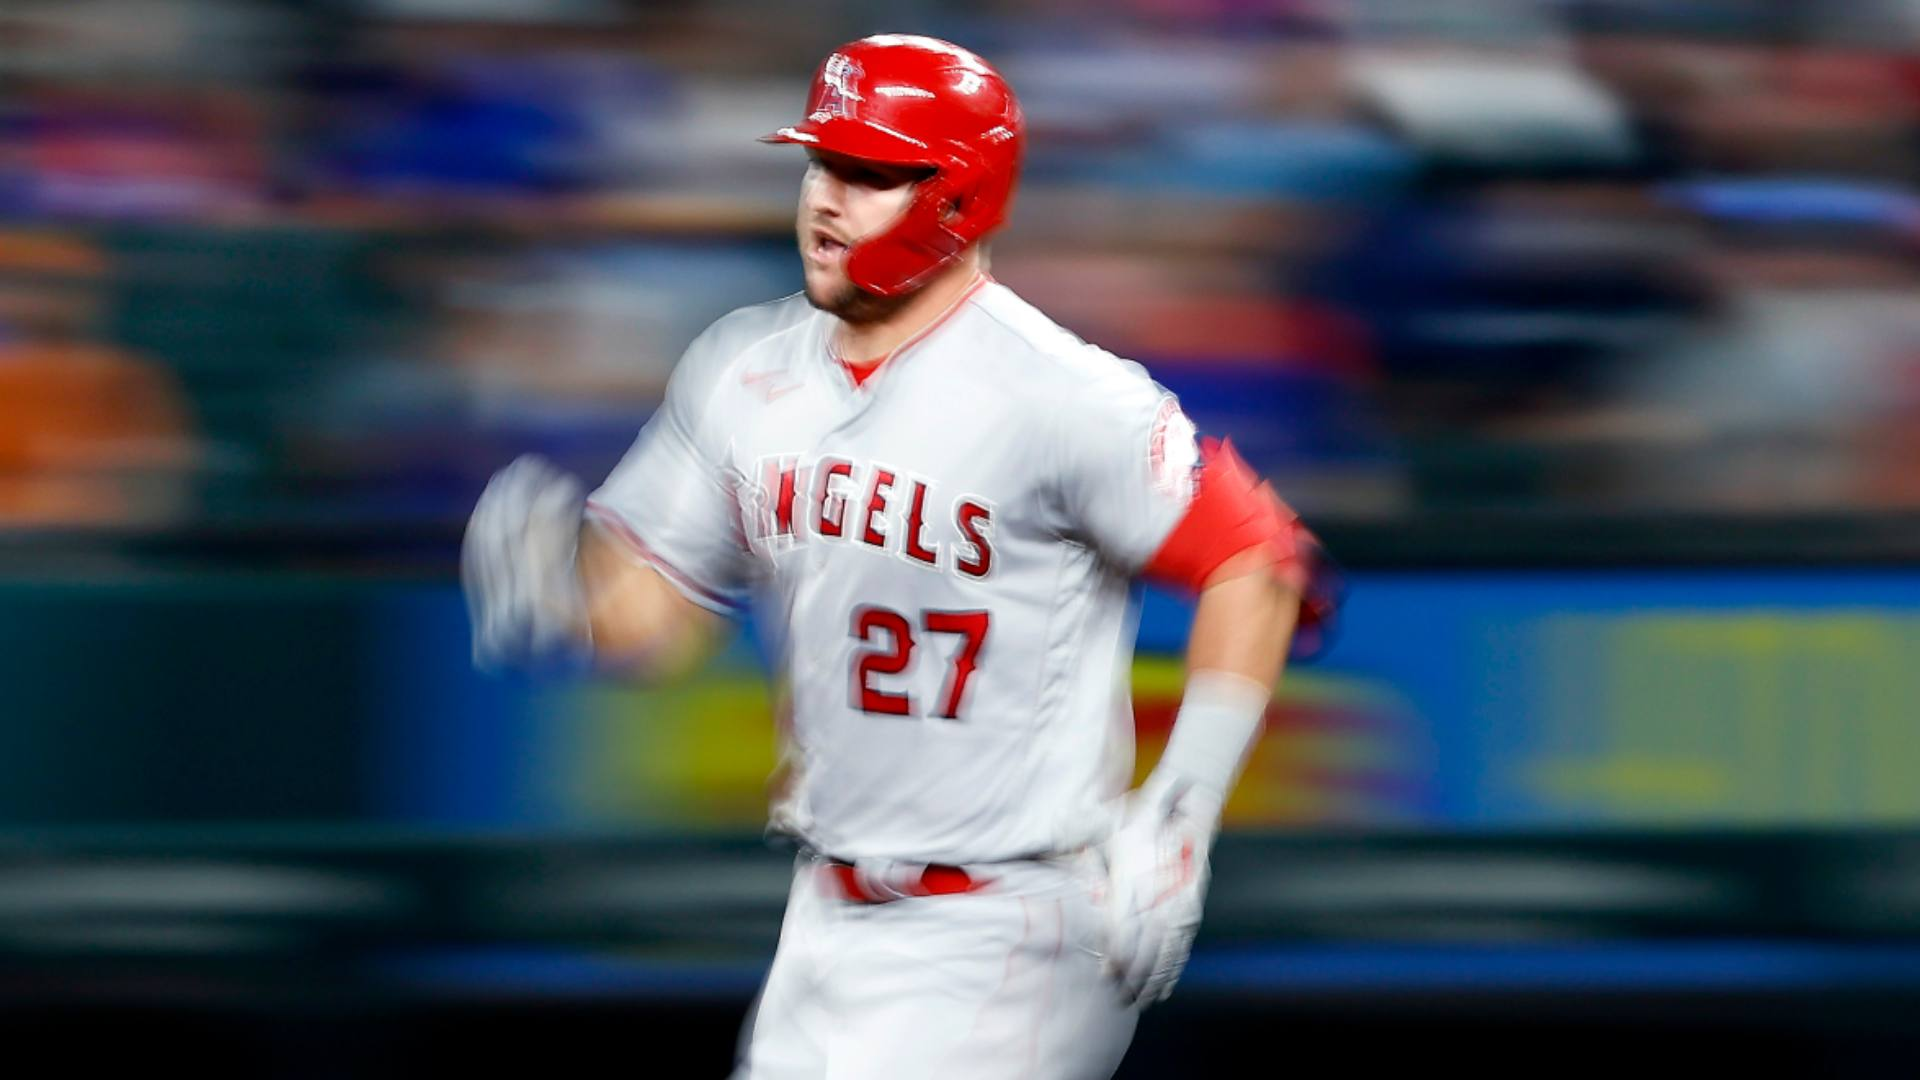 Mike Trout's best career start makes us wonder what's possible in 2021